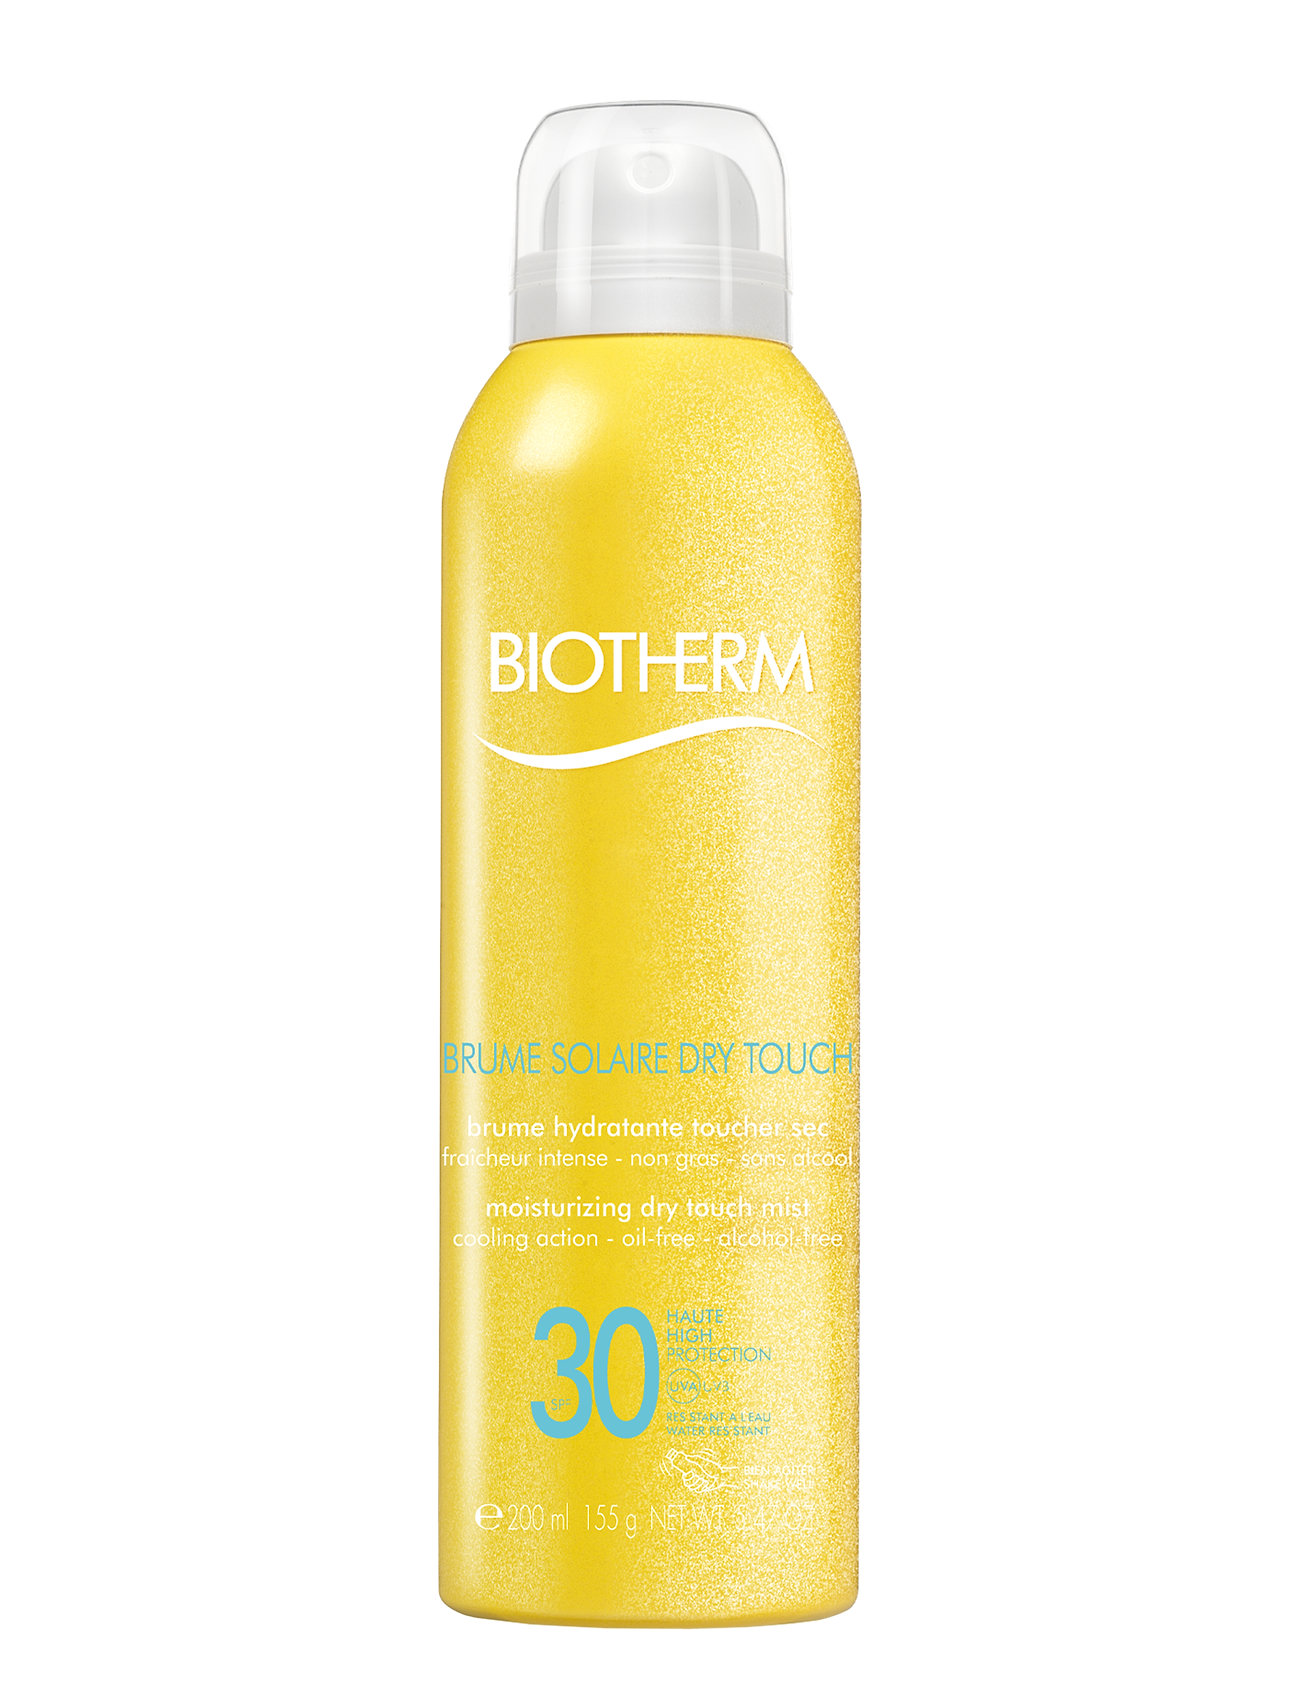 Biotherm Sun Mist Dry Touch Spf 30 200ml - CLEAR